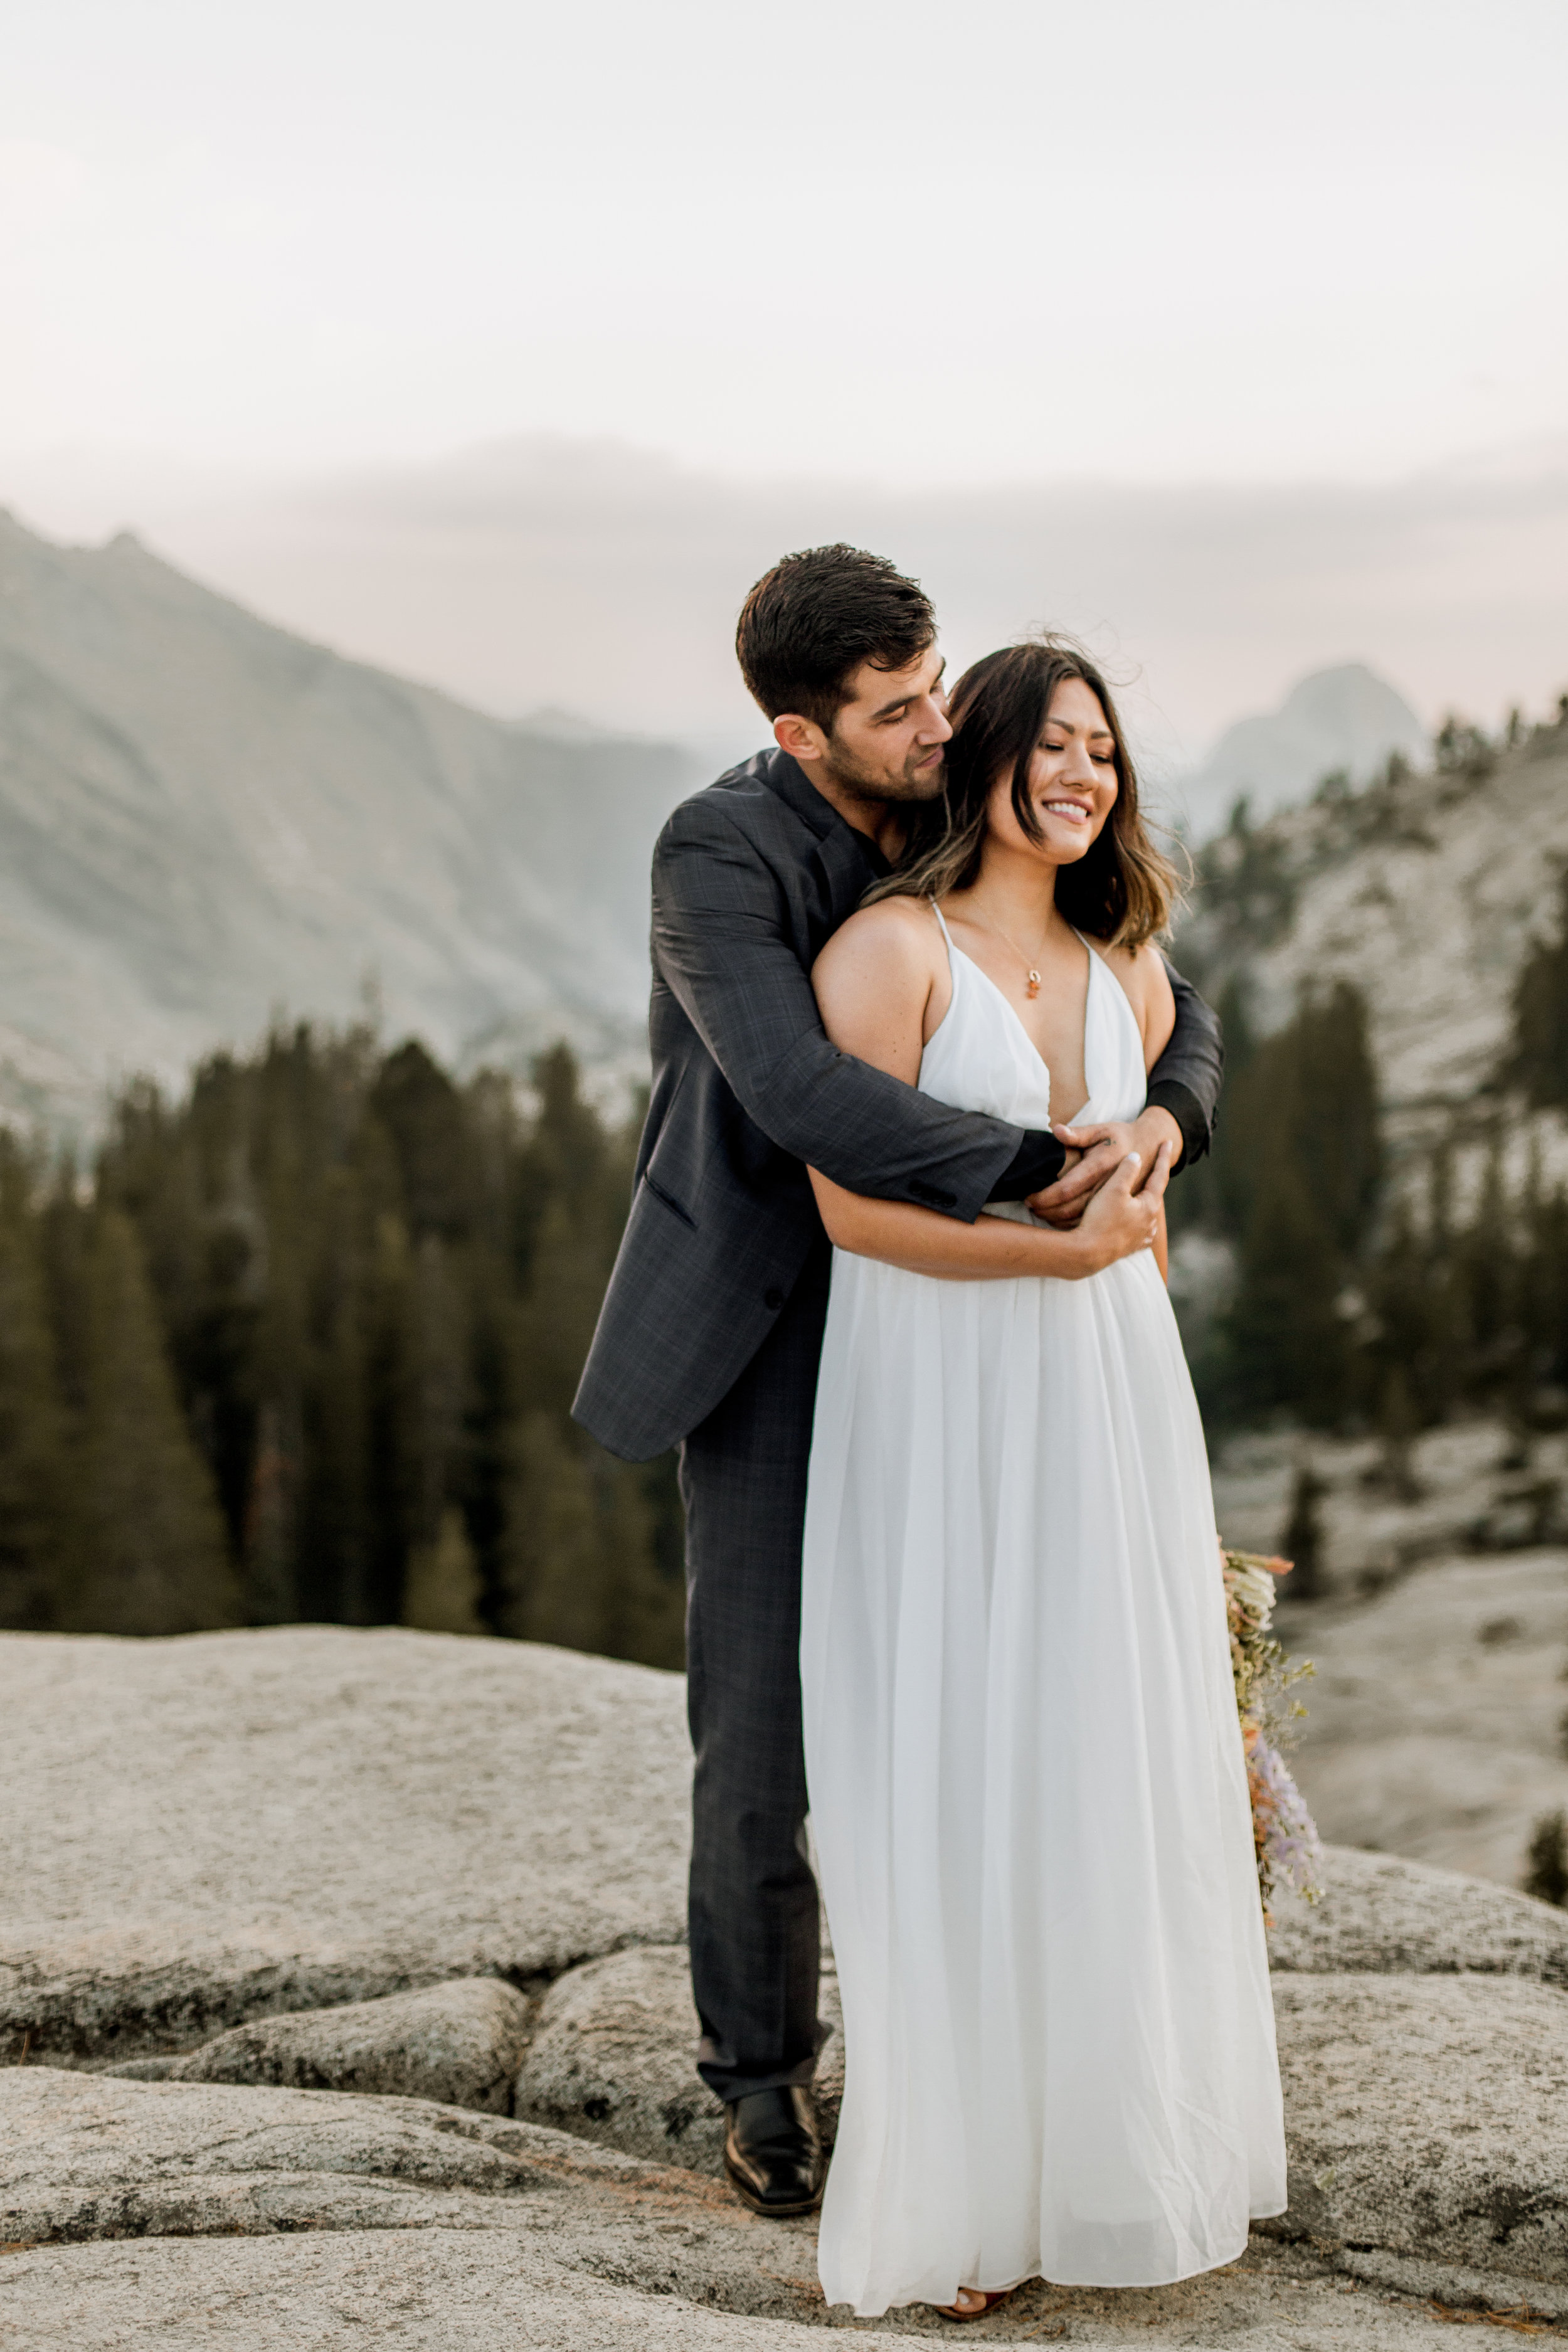 nicole-daacke-photography-yosemite-national-park-fall-elopement-adventurous-free-spirit-boho-bohemian-elopement-olmsted-point-yosemite-california-elope-adventure-elopement-photographer-34.jpg